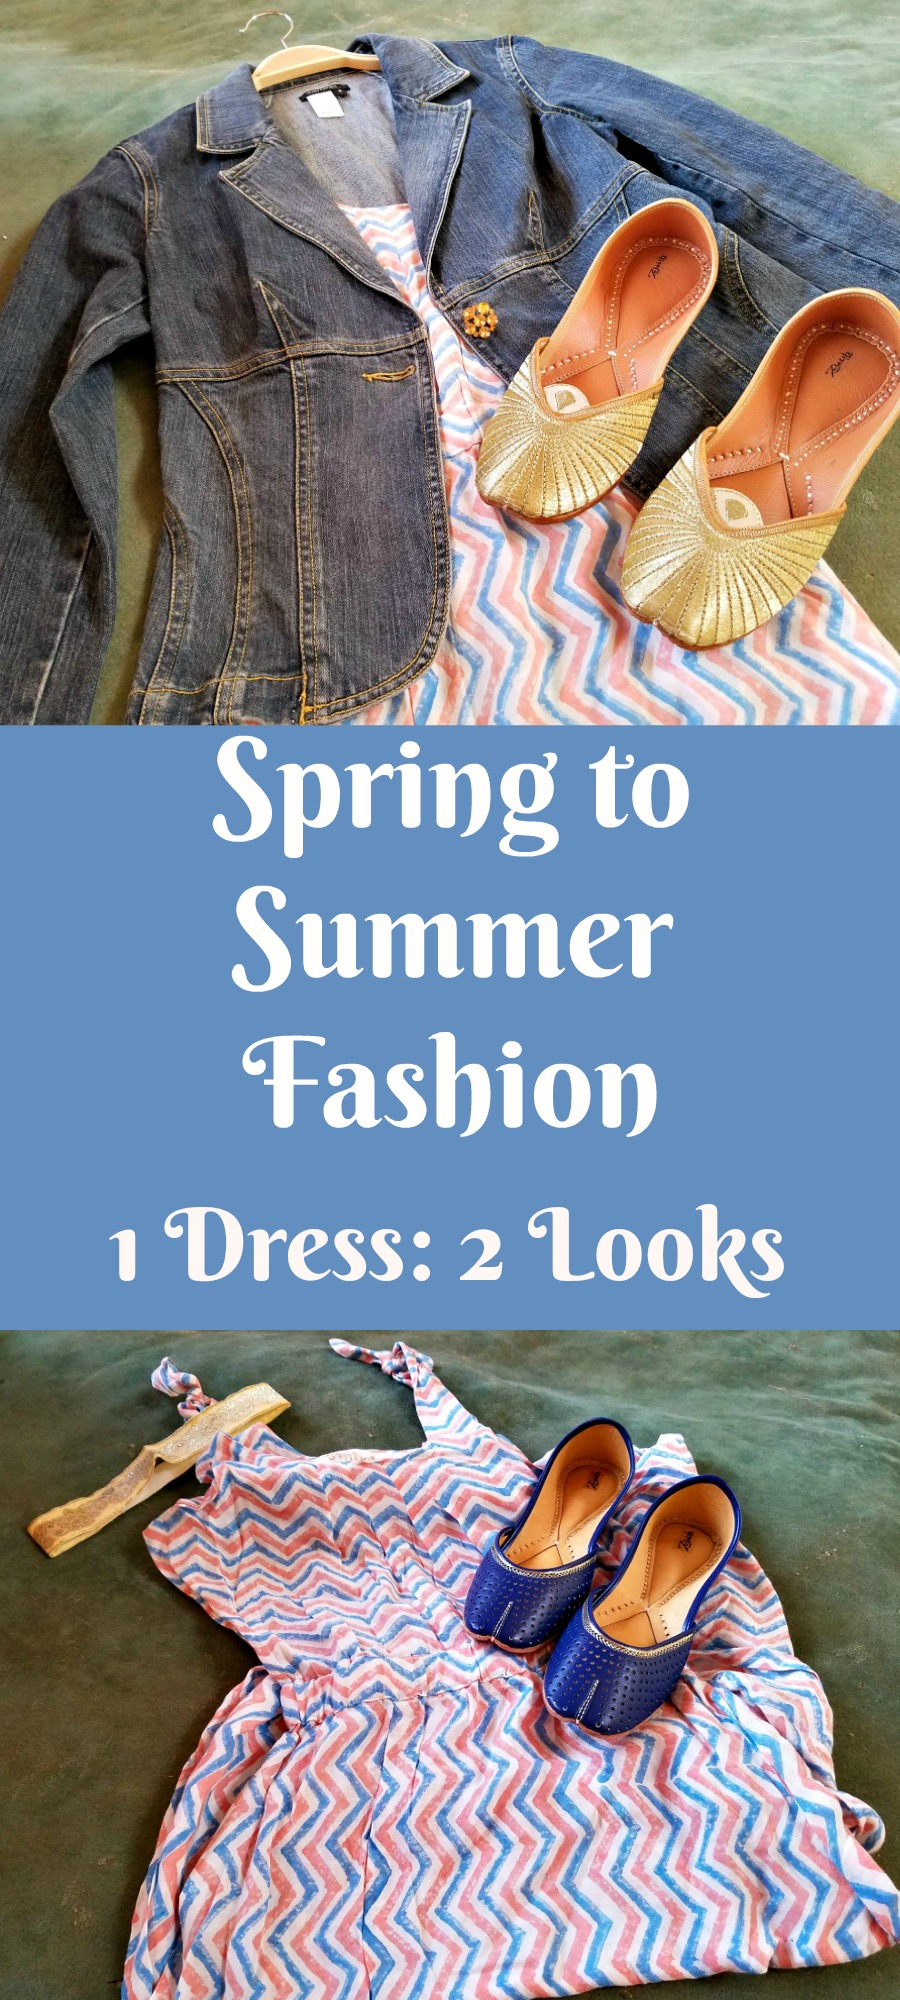 spring to summer fashion, affordable ethical fashion, LoveJustly, sponsored